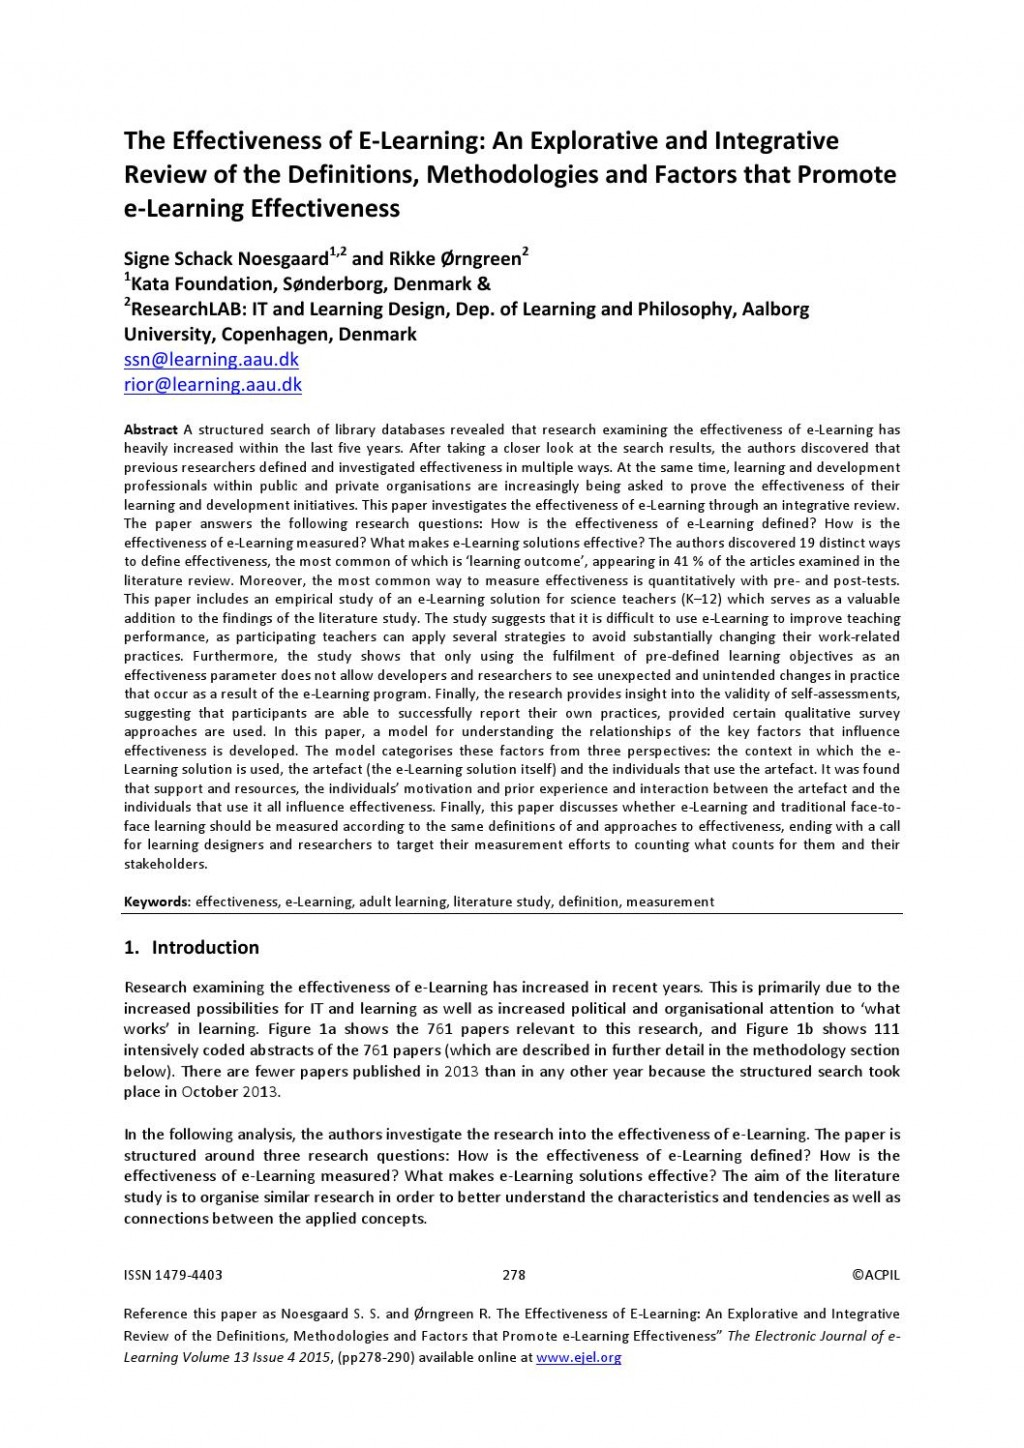 004 Page 1 Effectiveness Of Online Education Research Amazing Paper Large